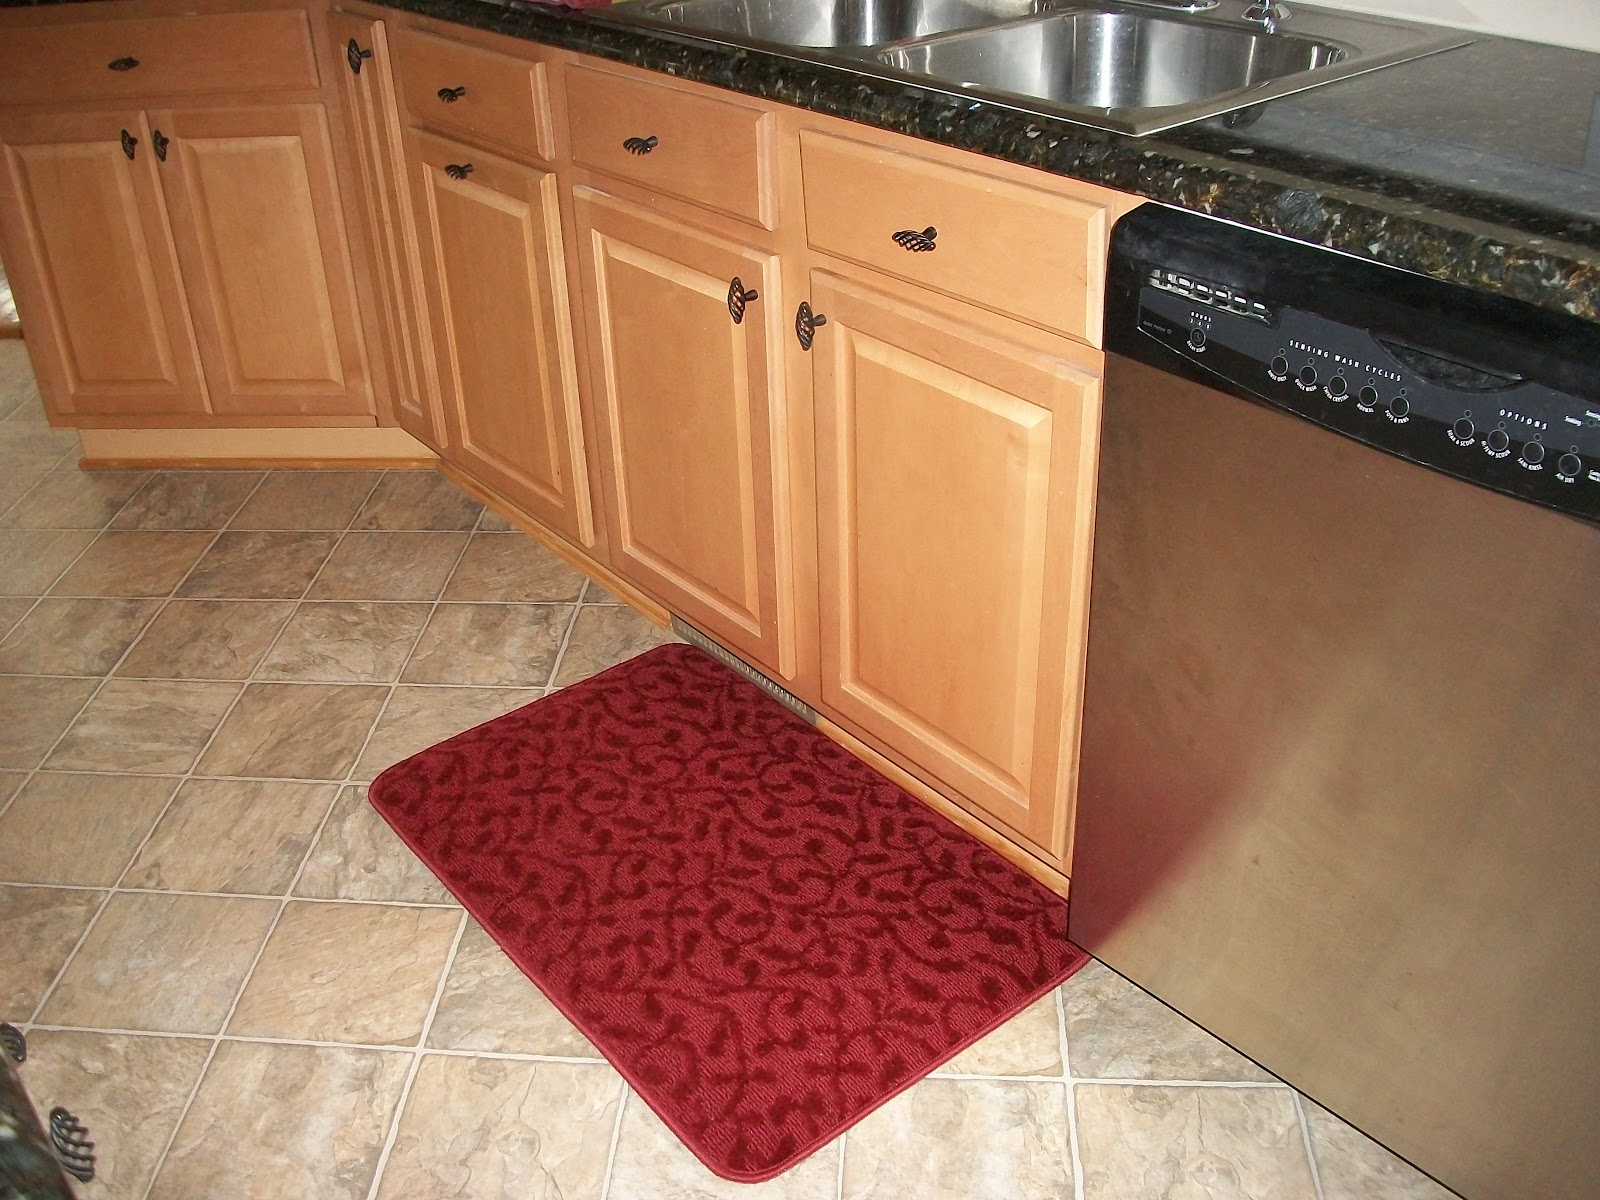 e mat padded leather gelpro mats vintage classic floor kitchen vl